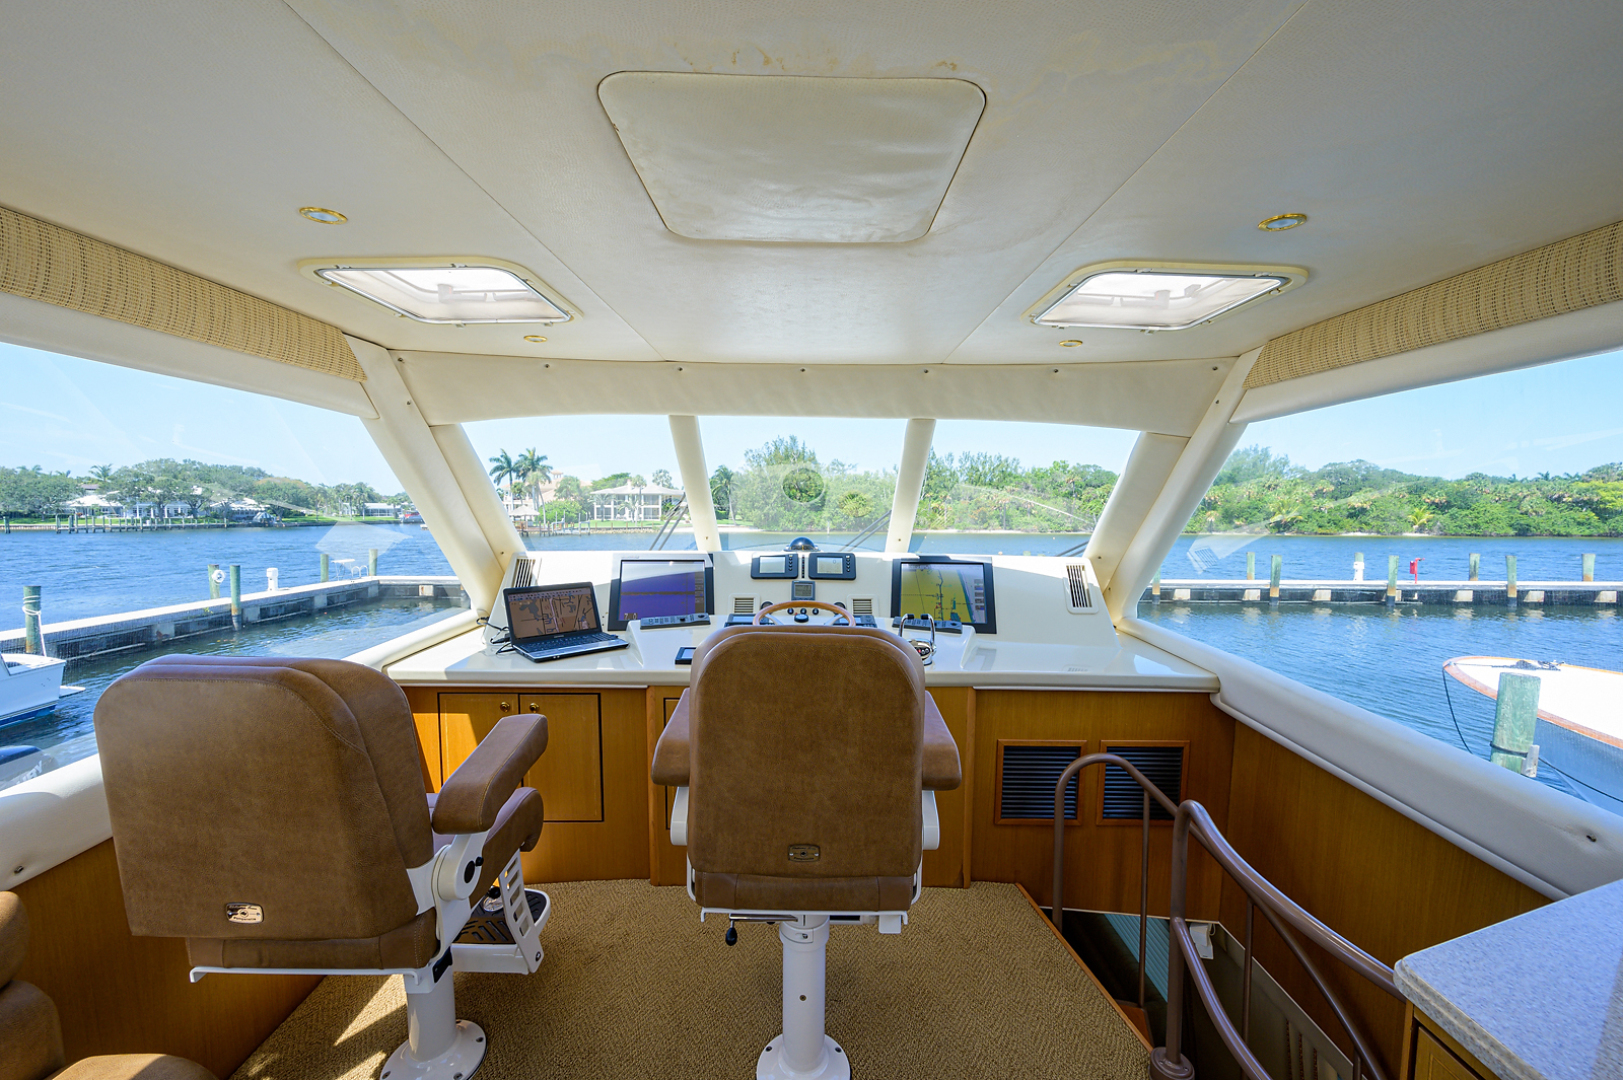 Ocean Yachts-Odyssey 2005-MISS JAN Palm Beach Gardens-Florida-United States-Enclosed Flybridge-1386990 | Thumbnail